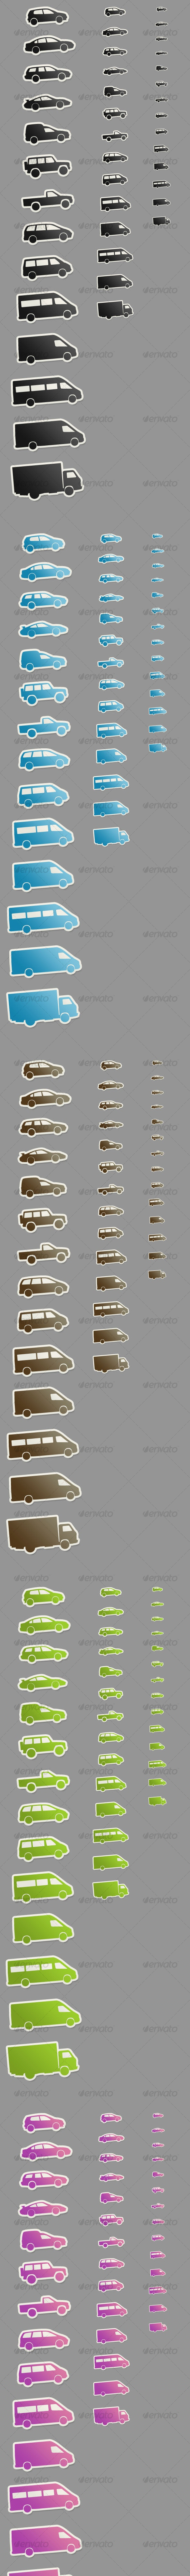 14 Automobile Symbol Stickers, 7 Colors - Objects Icons